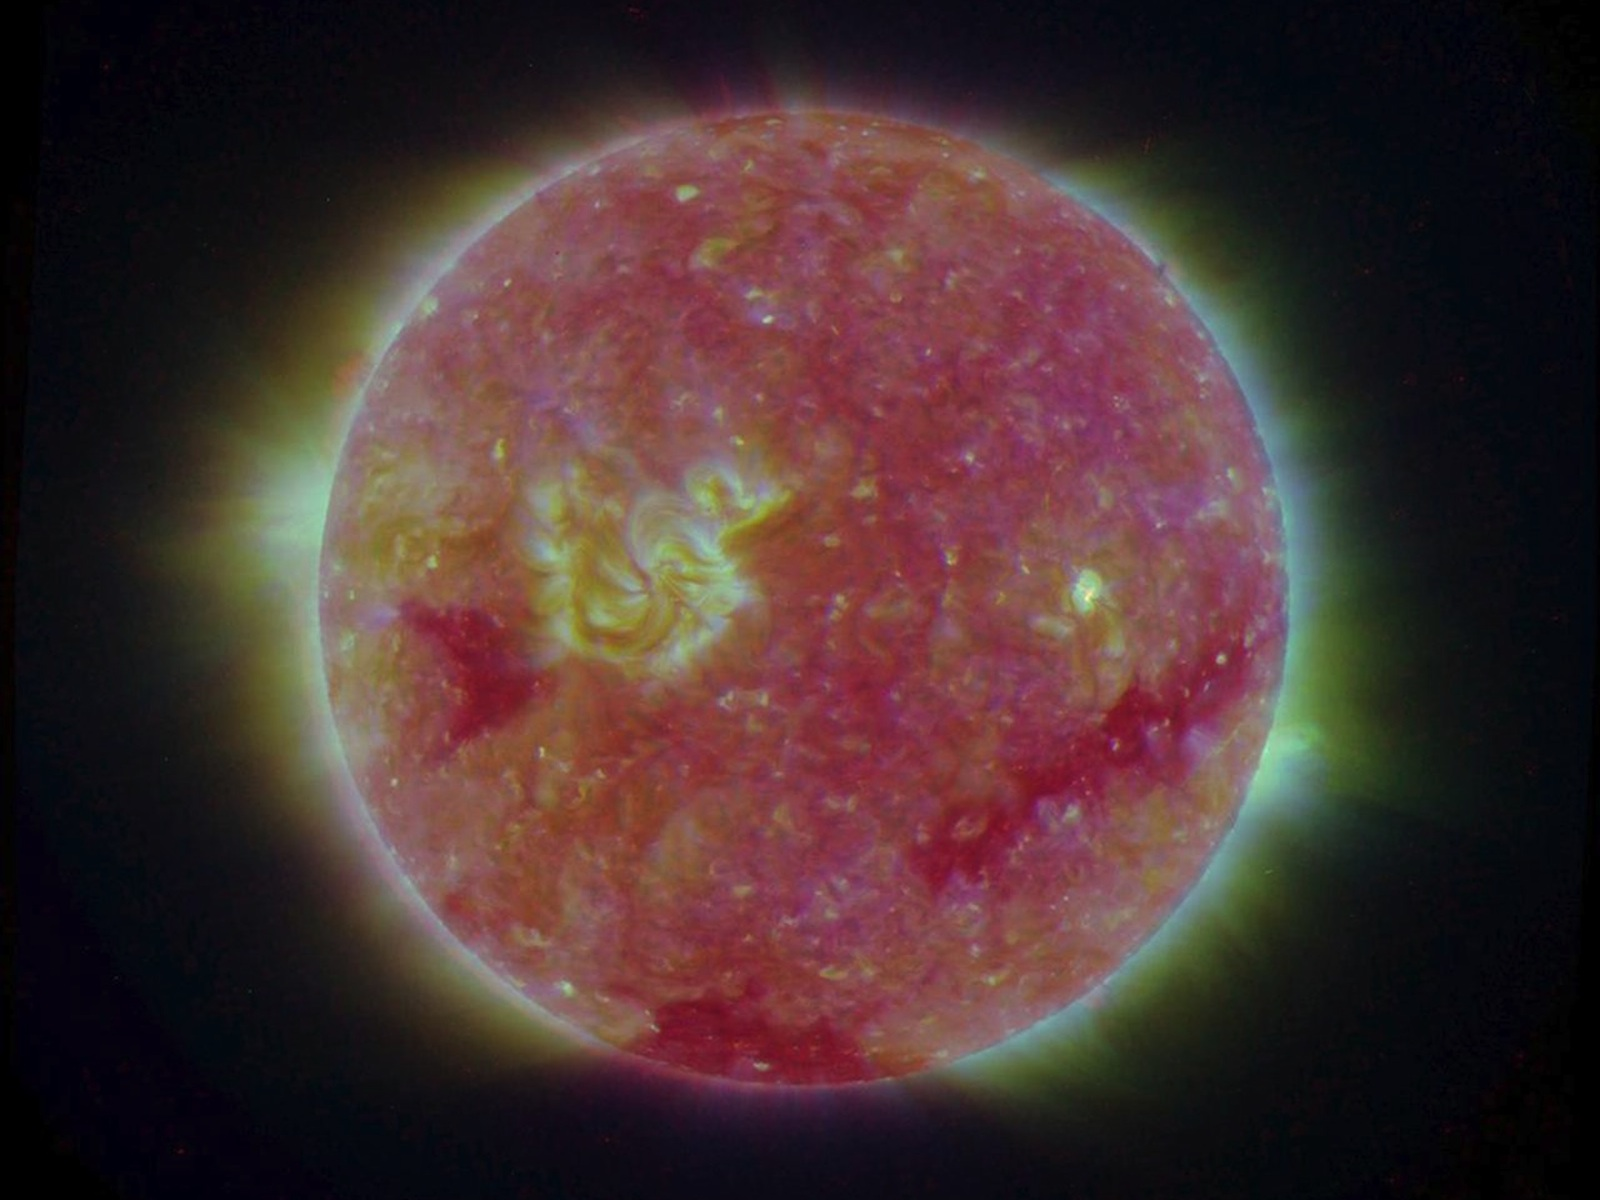 Full Disk Image of the Sun